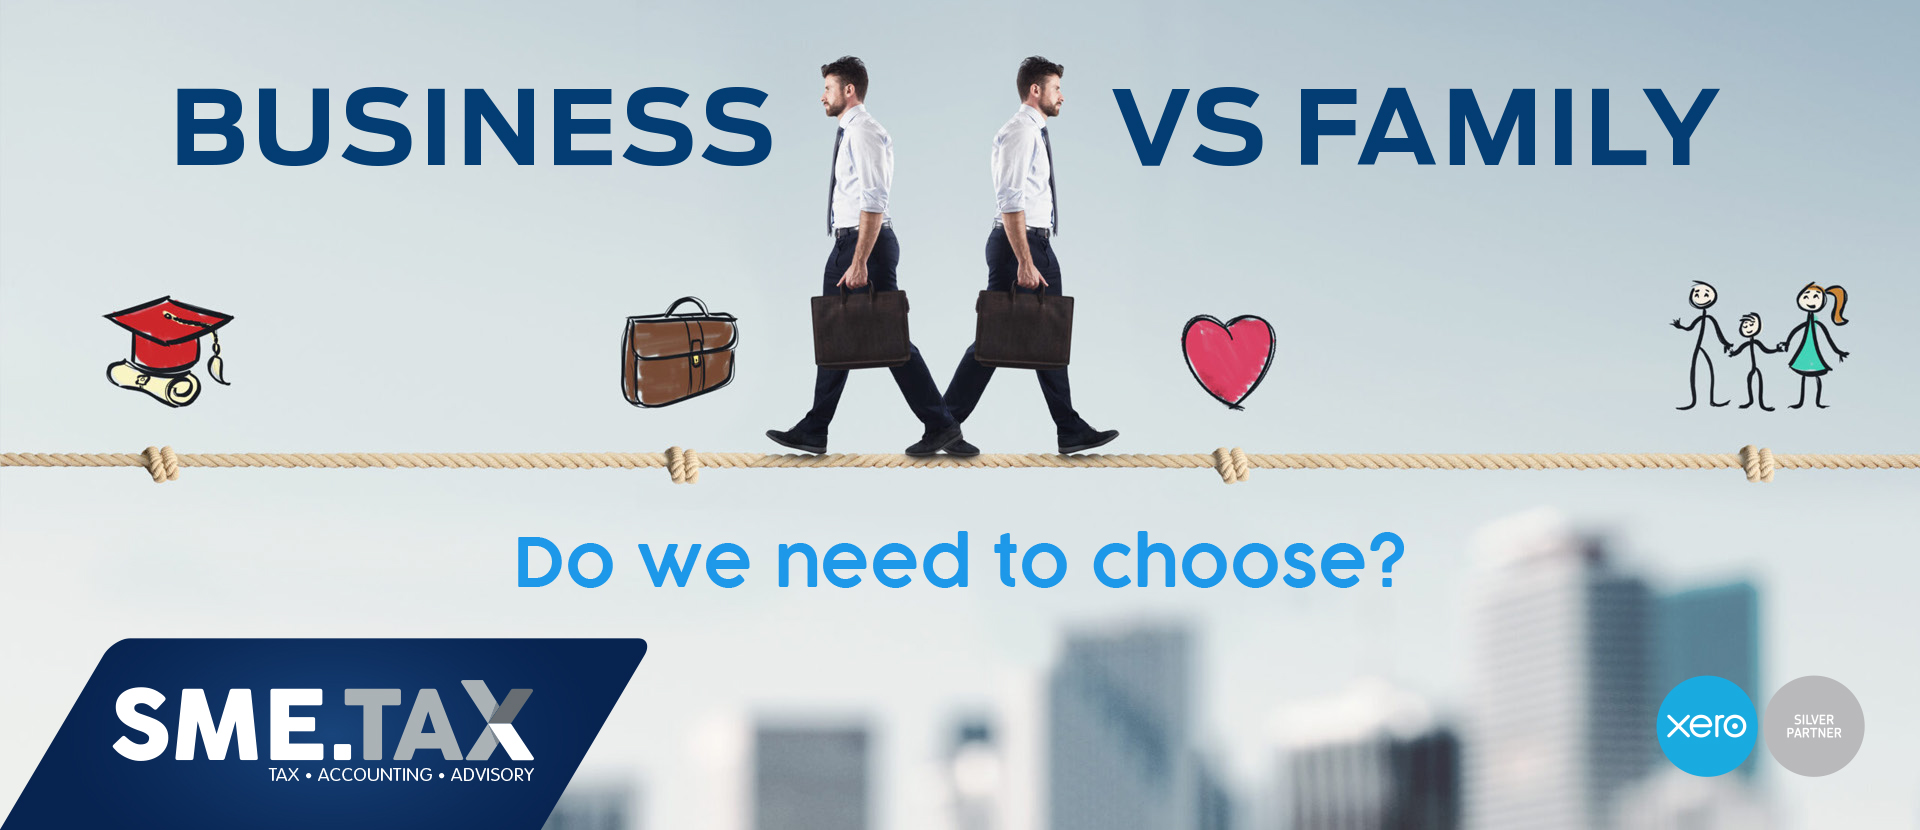 Business vs Family – Do we need to choose? 2